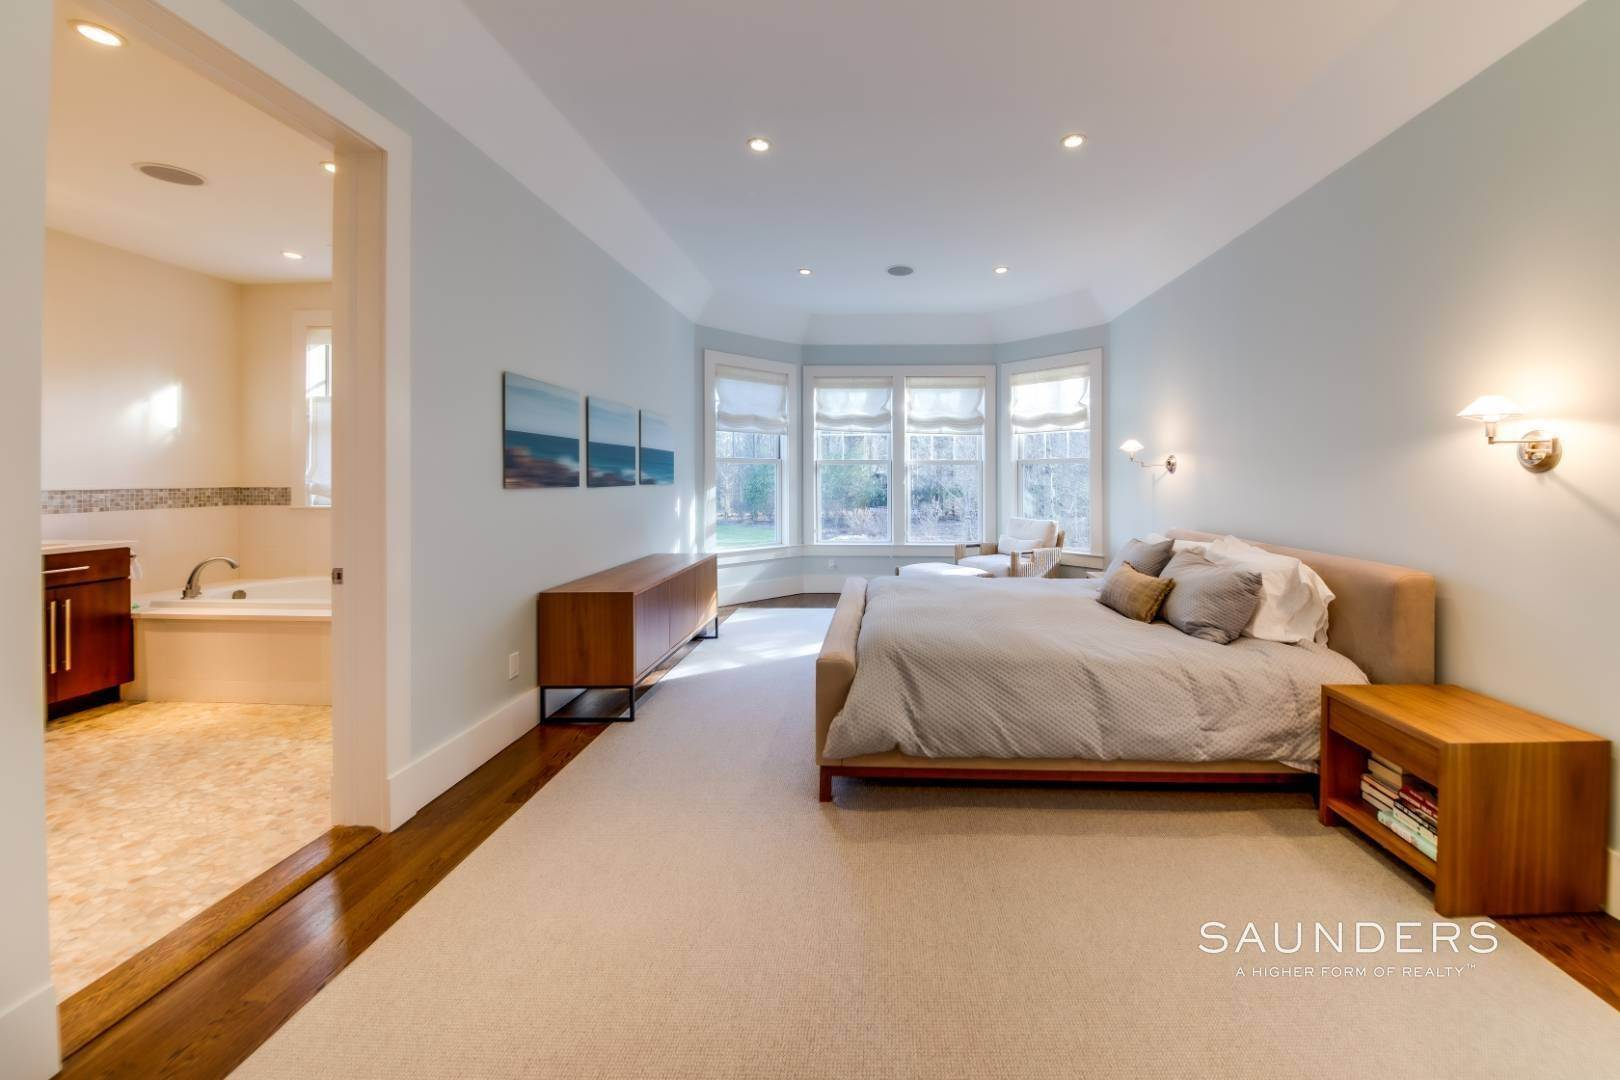 14. Single Family Homes for Sale at Wainscott South Traditional Near Beach Lane 10 Merriwood Drive, Wainscott, East Hampton Town, NY 11975